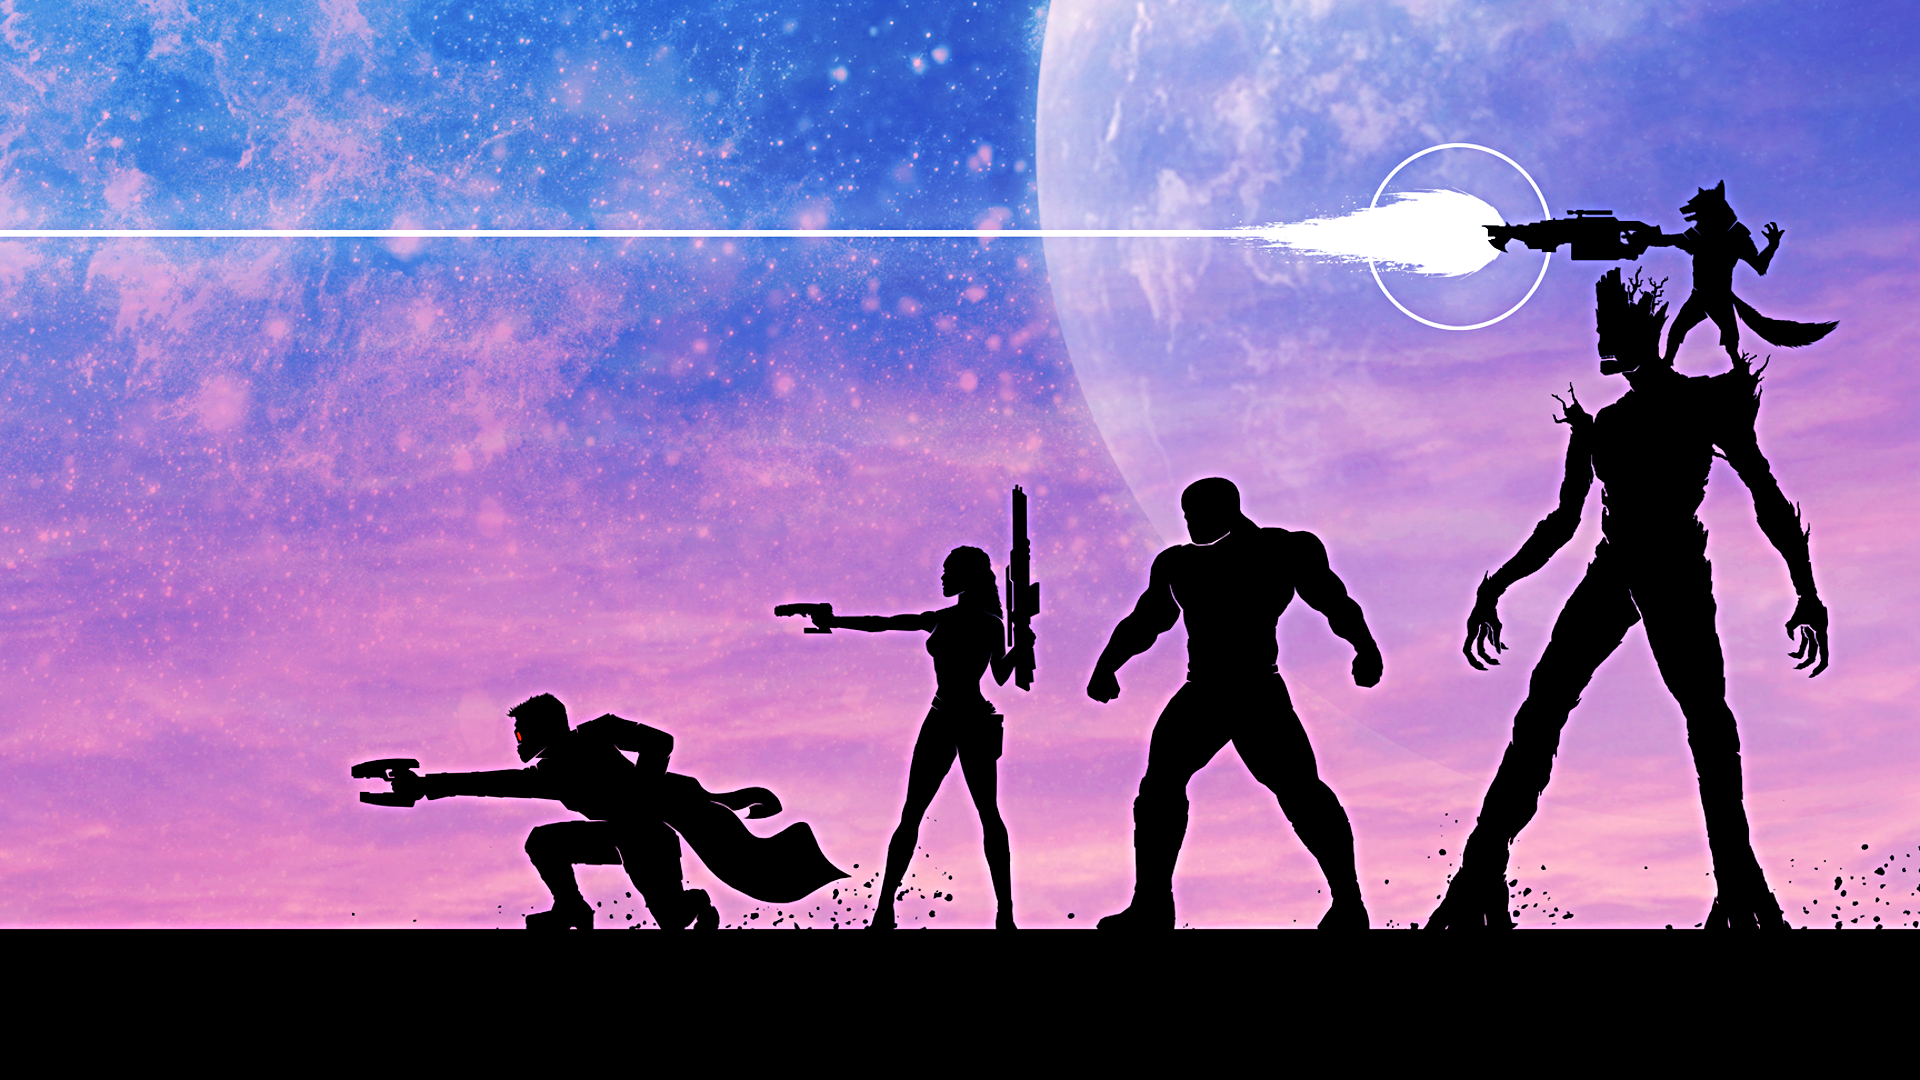 Free Download Android Wallpaper Guardians Of The Galaxy 1920x1080